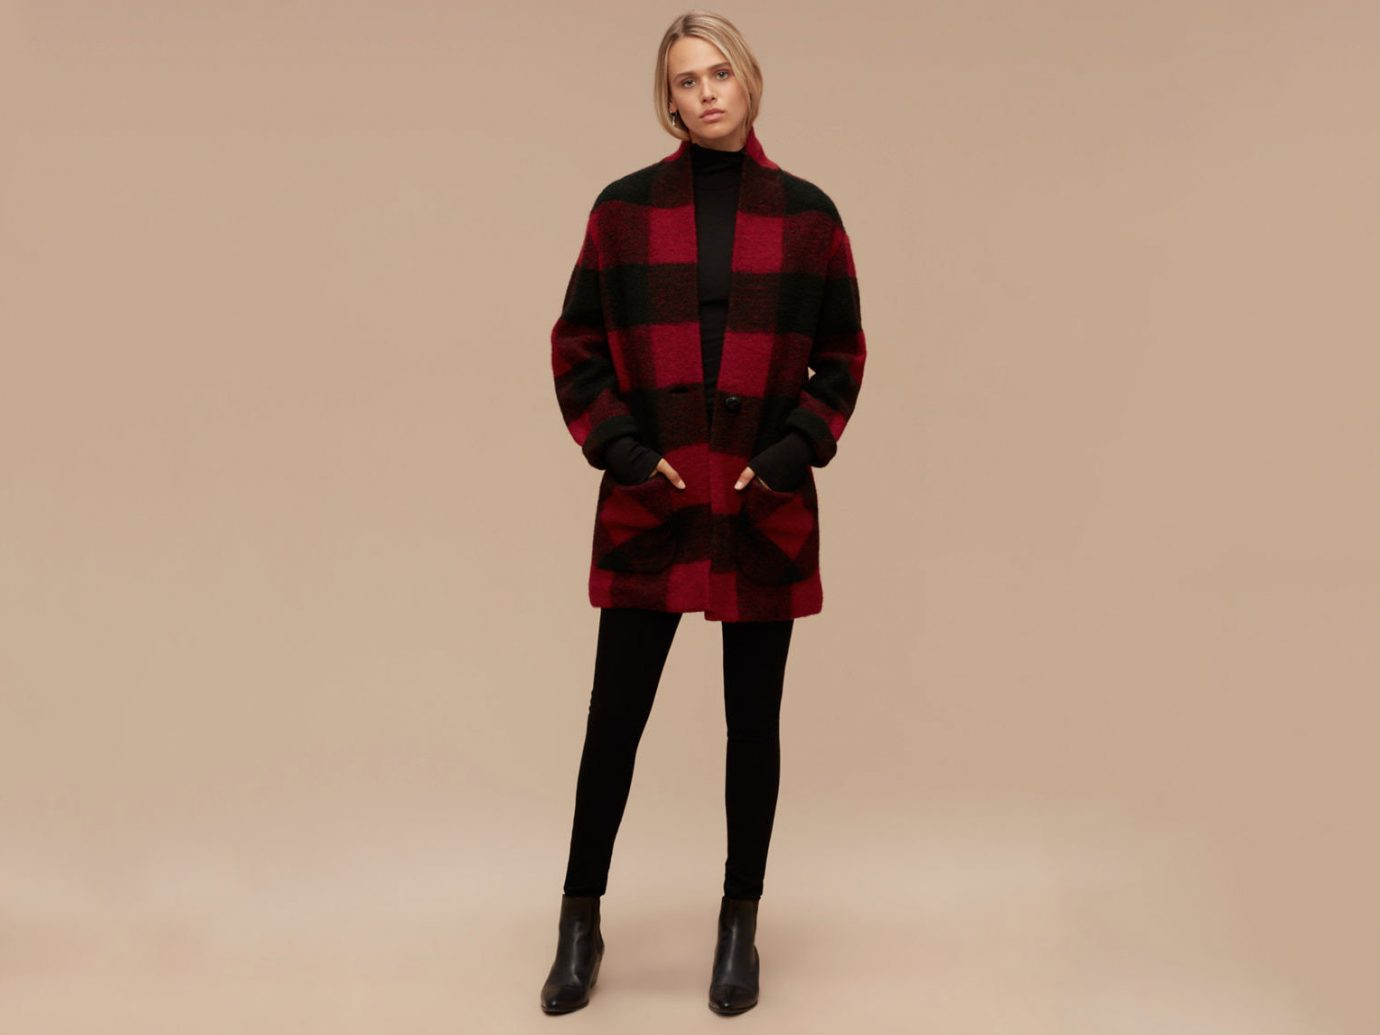 Style + Design clothing red standing pattern tartan sleeve Design fashion outerwear dress textile photo shoot wool posing